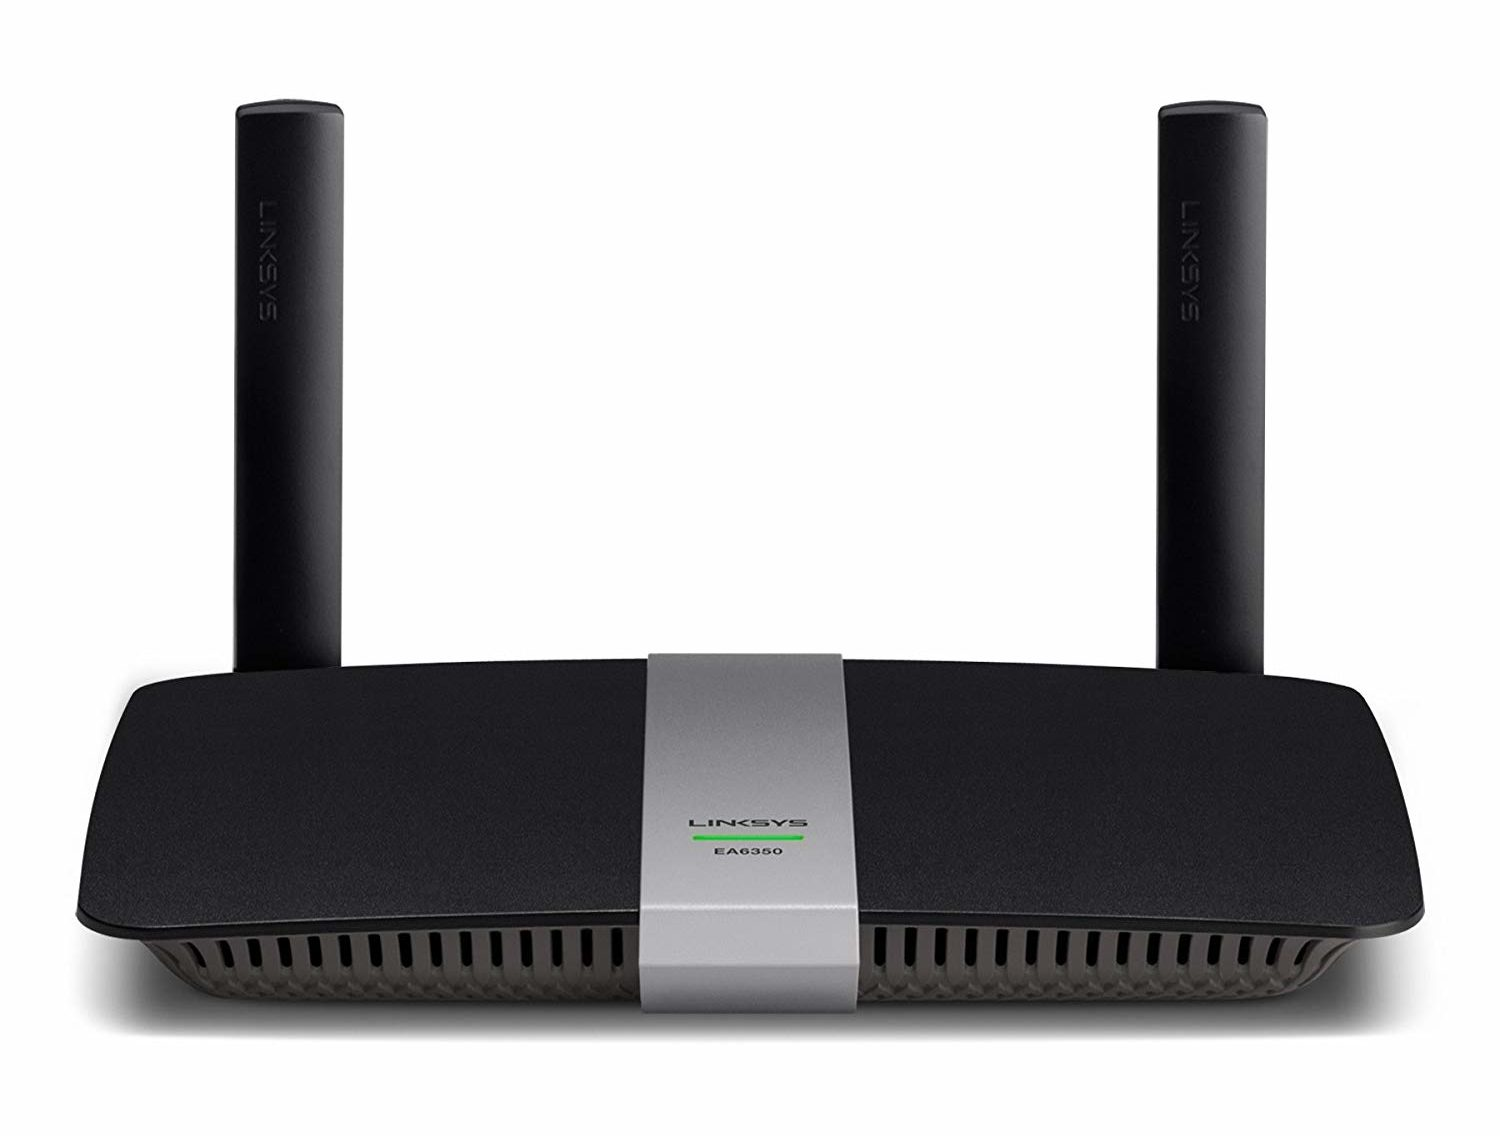 Linksys Dual-Band Wi-Fi Router AC1200